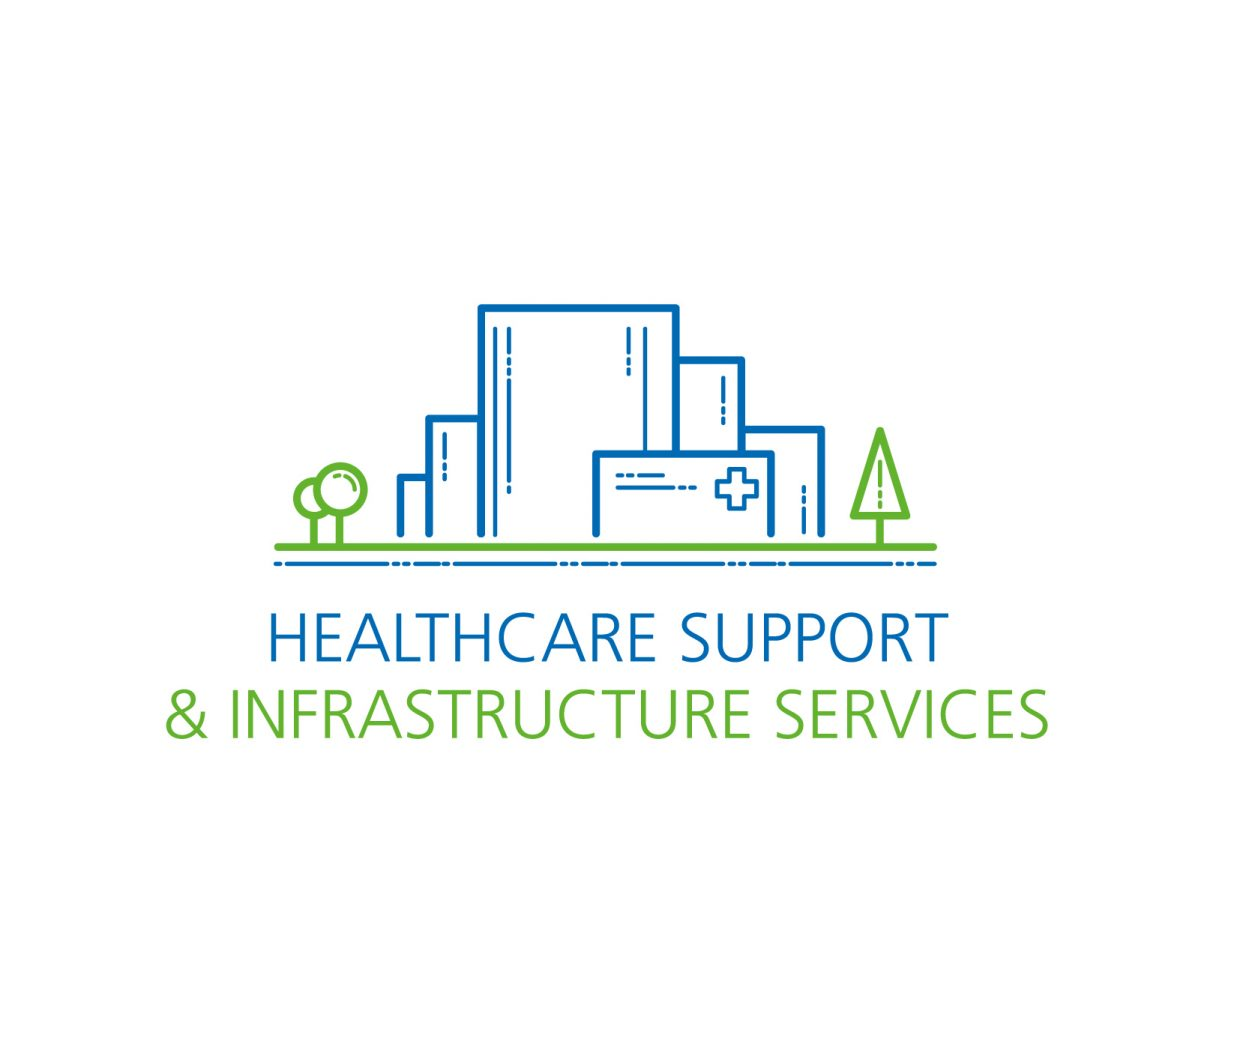 HSIS - HEALTHCARE SUPPORT AND INFRASTRUCTURE SERVICES